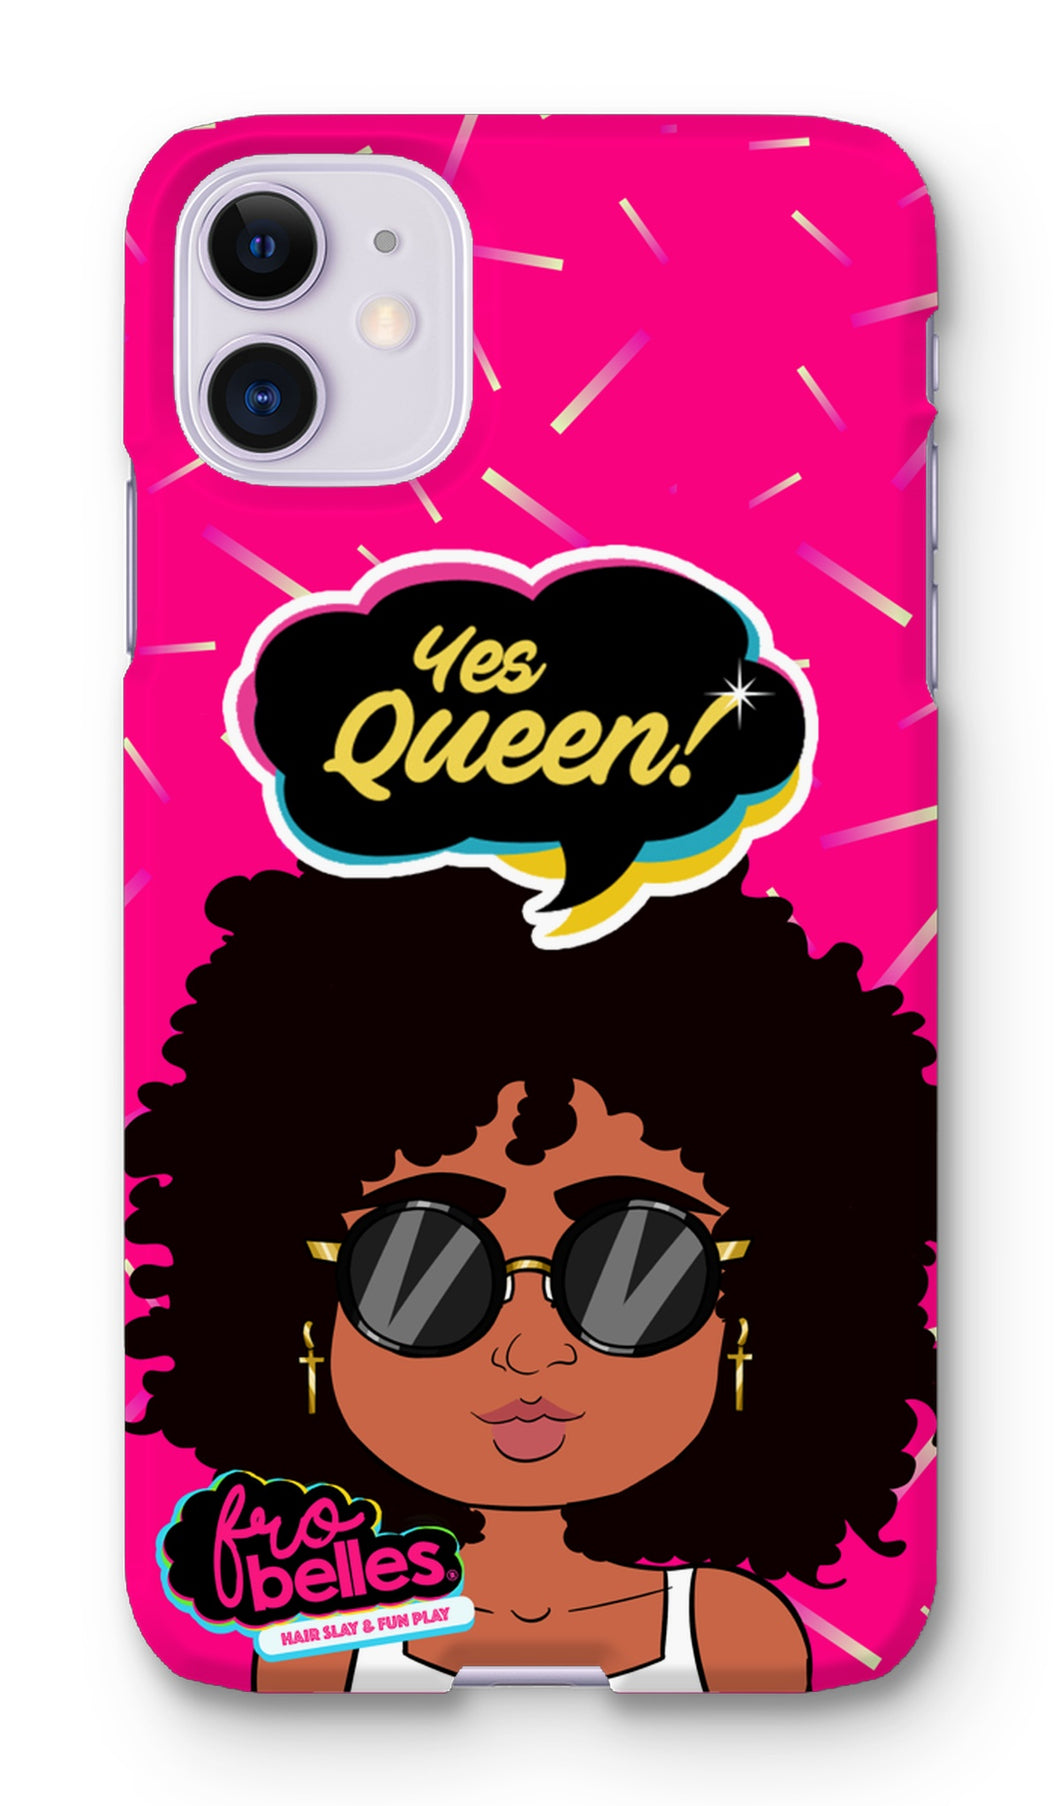 Kelli 'Yes Queen!' - Pink Phone Case